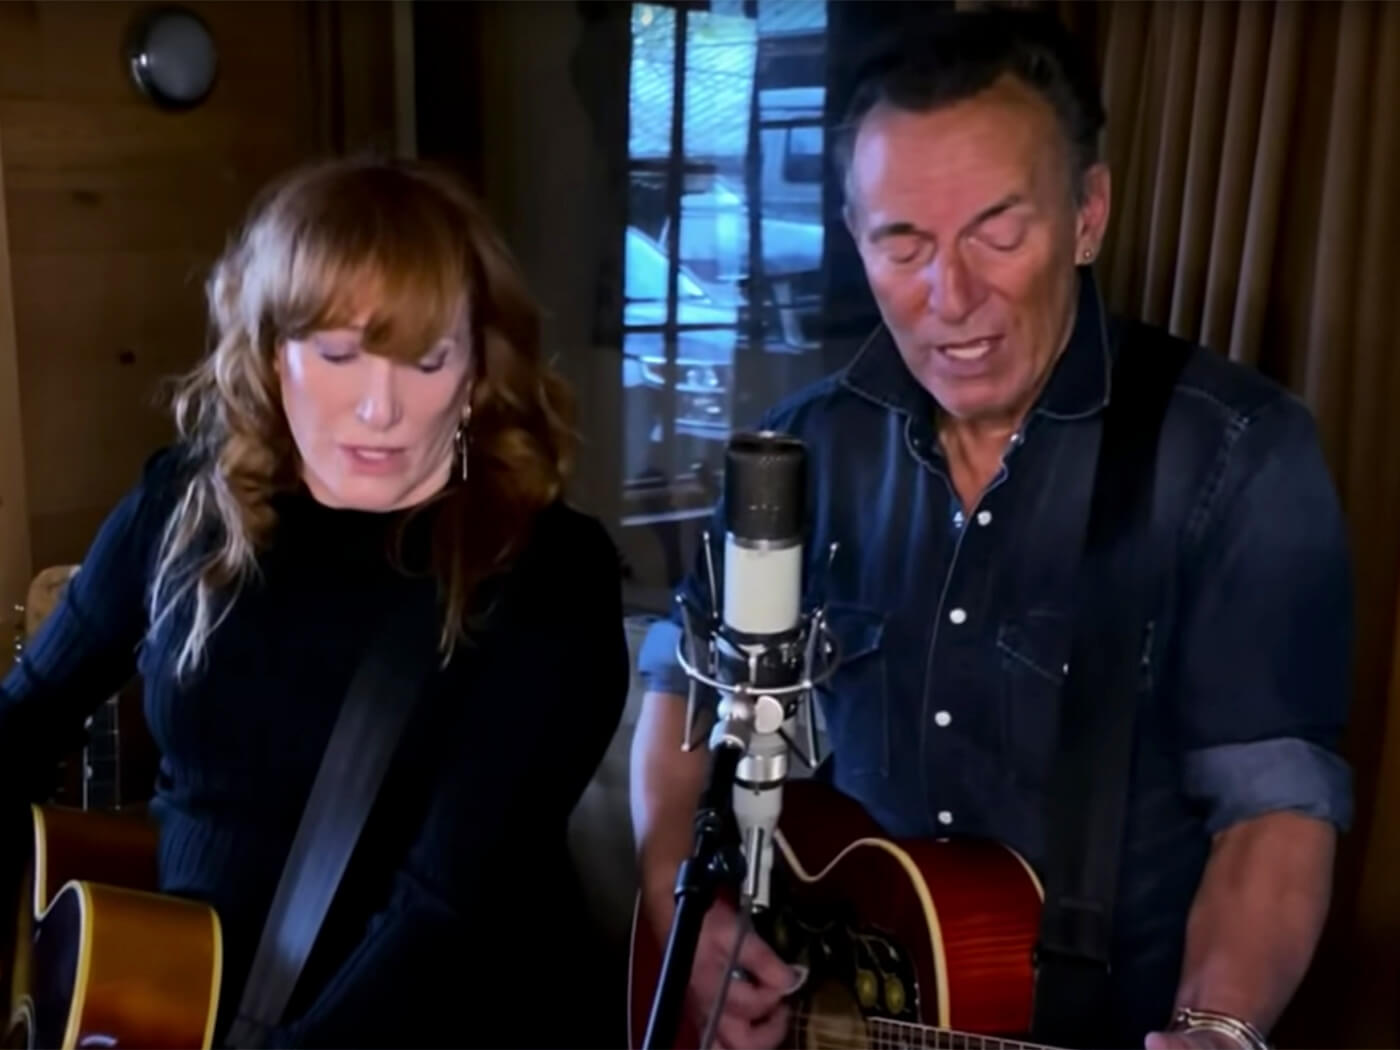 Watch Bruce Springsteen and Patti Scialfa's stay-at-home session